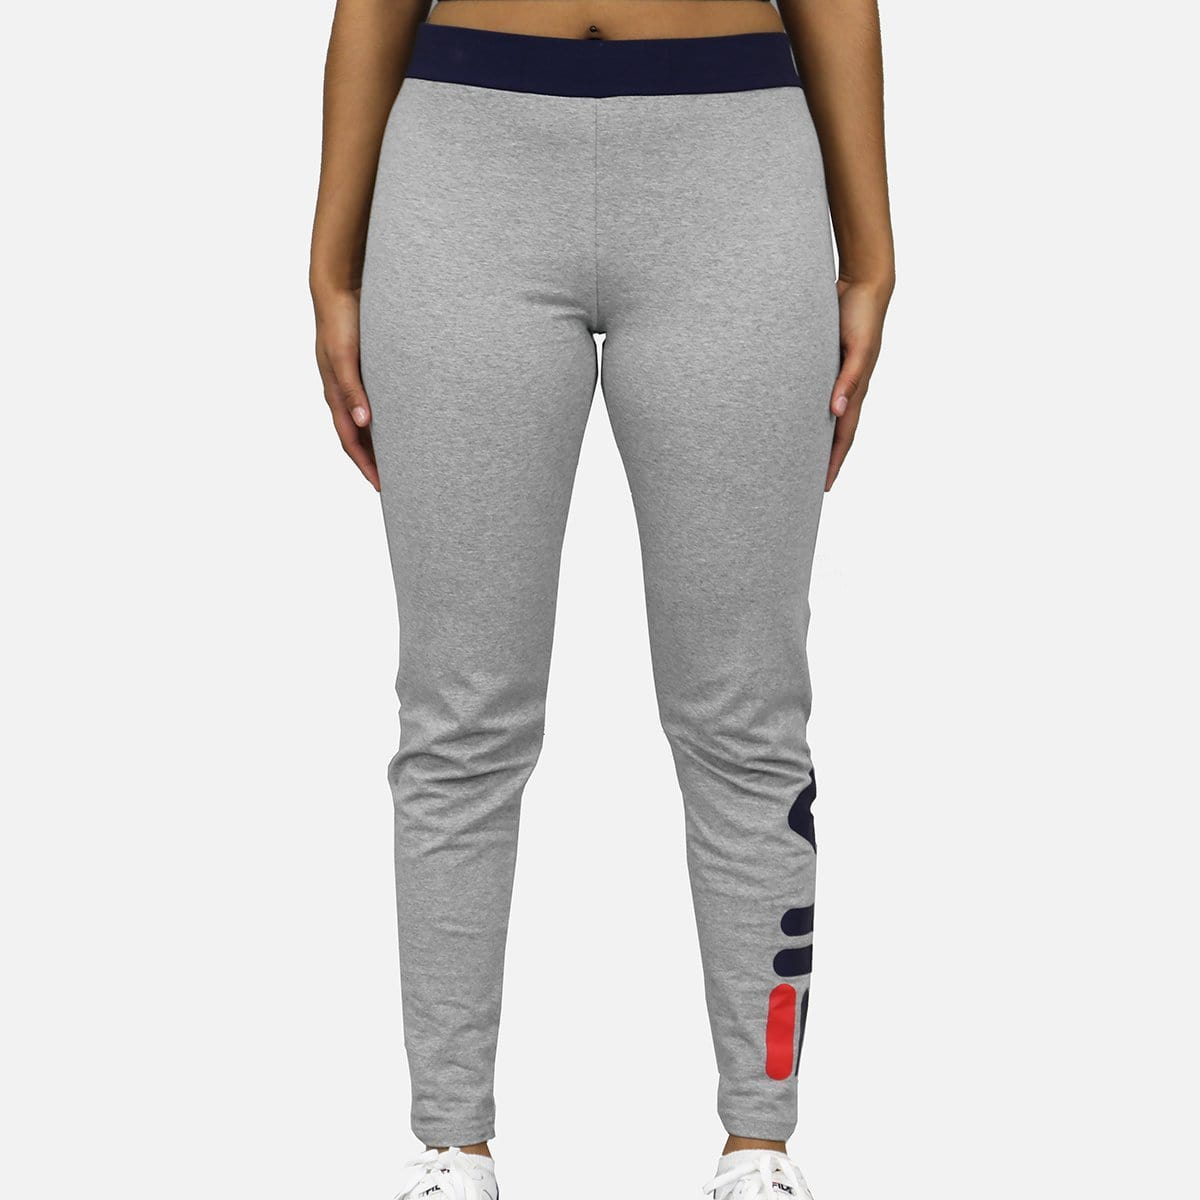 FILA Women's Imelda Tight